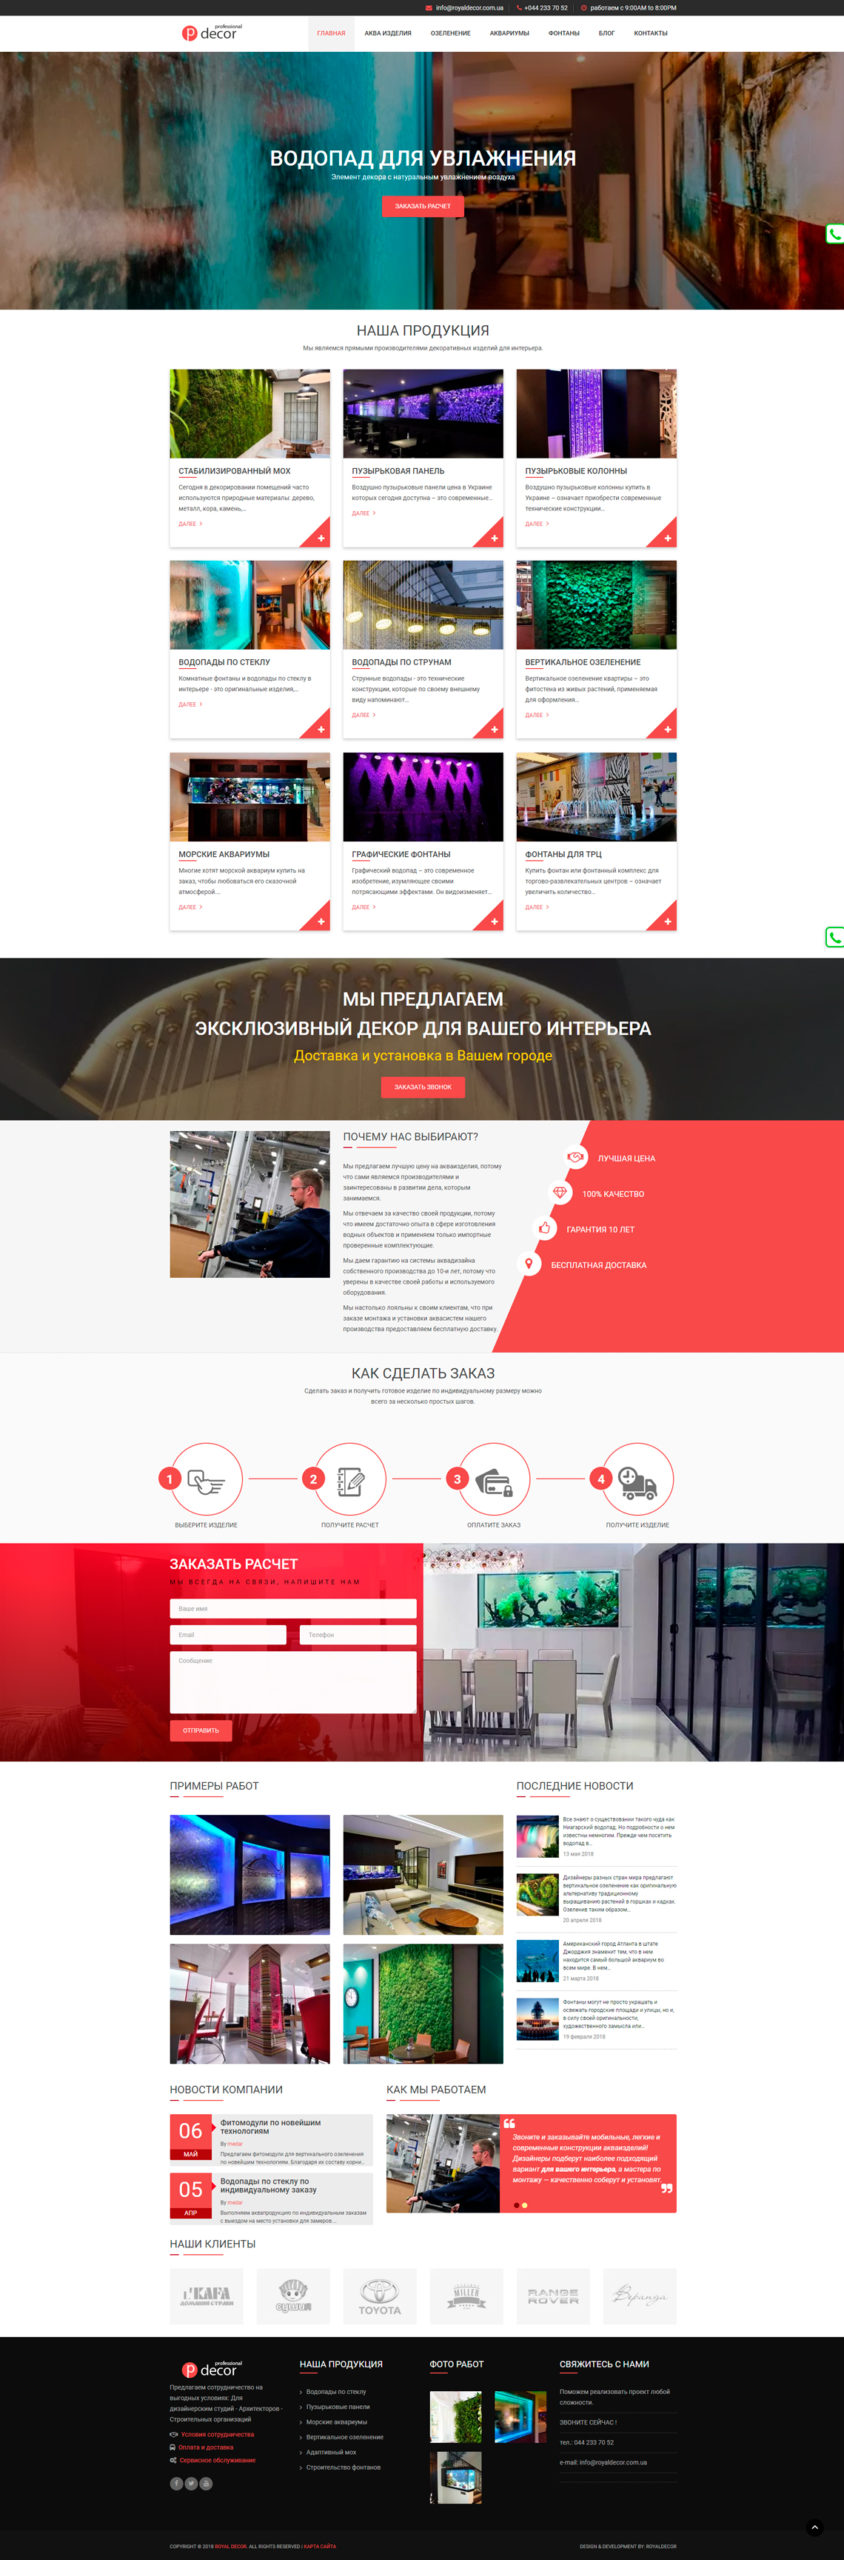 Website building for home and office waterfalls seller — royaldecor.com.ua